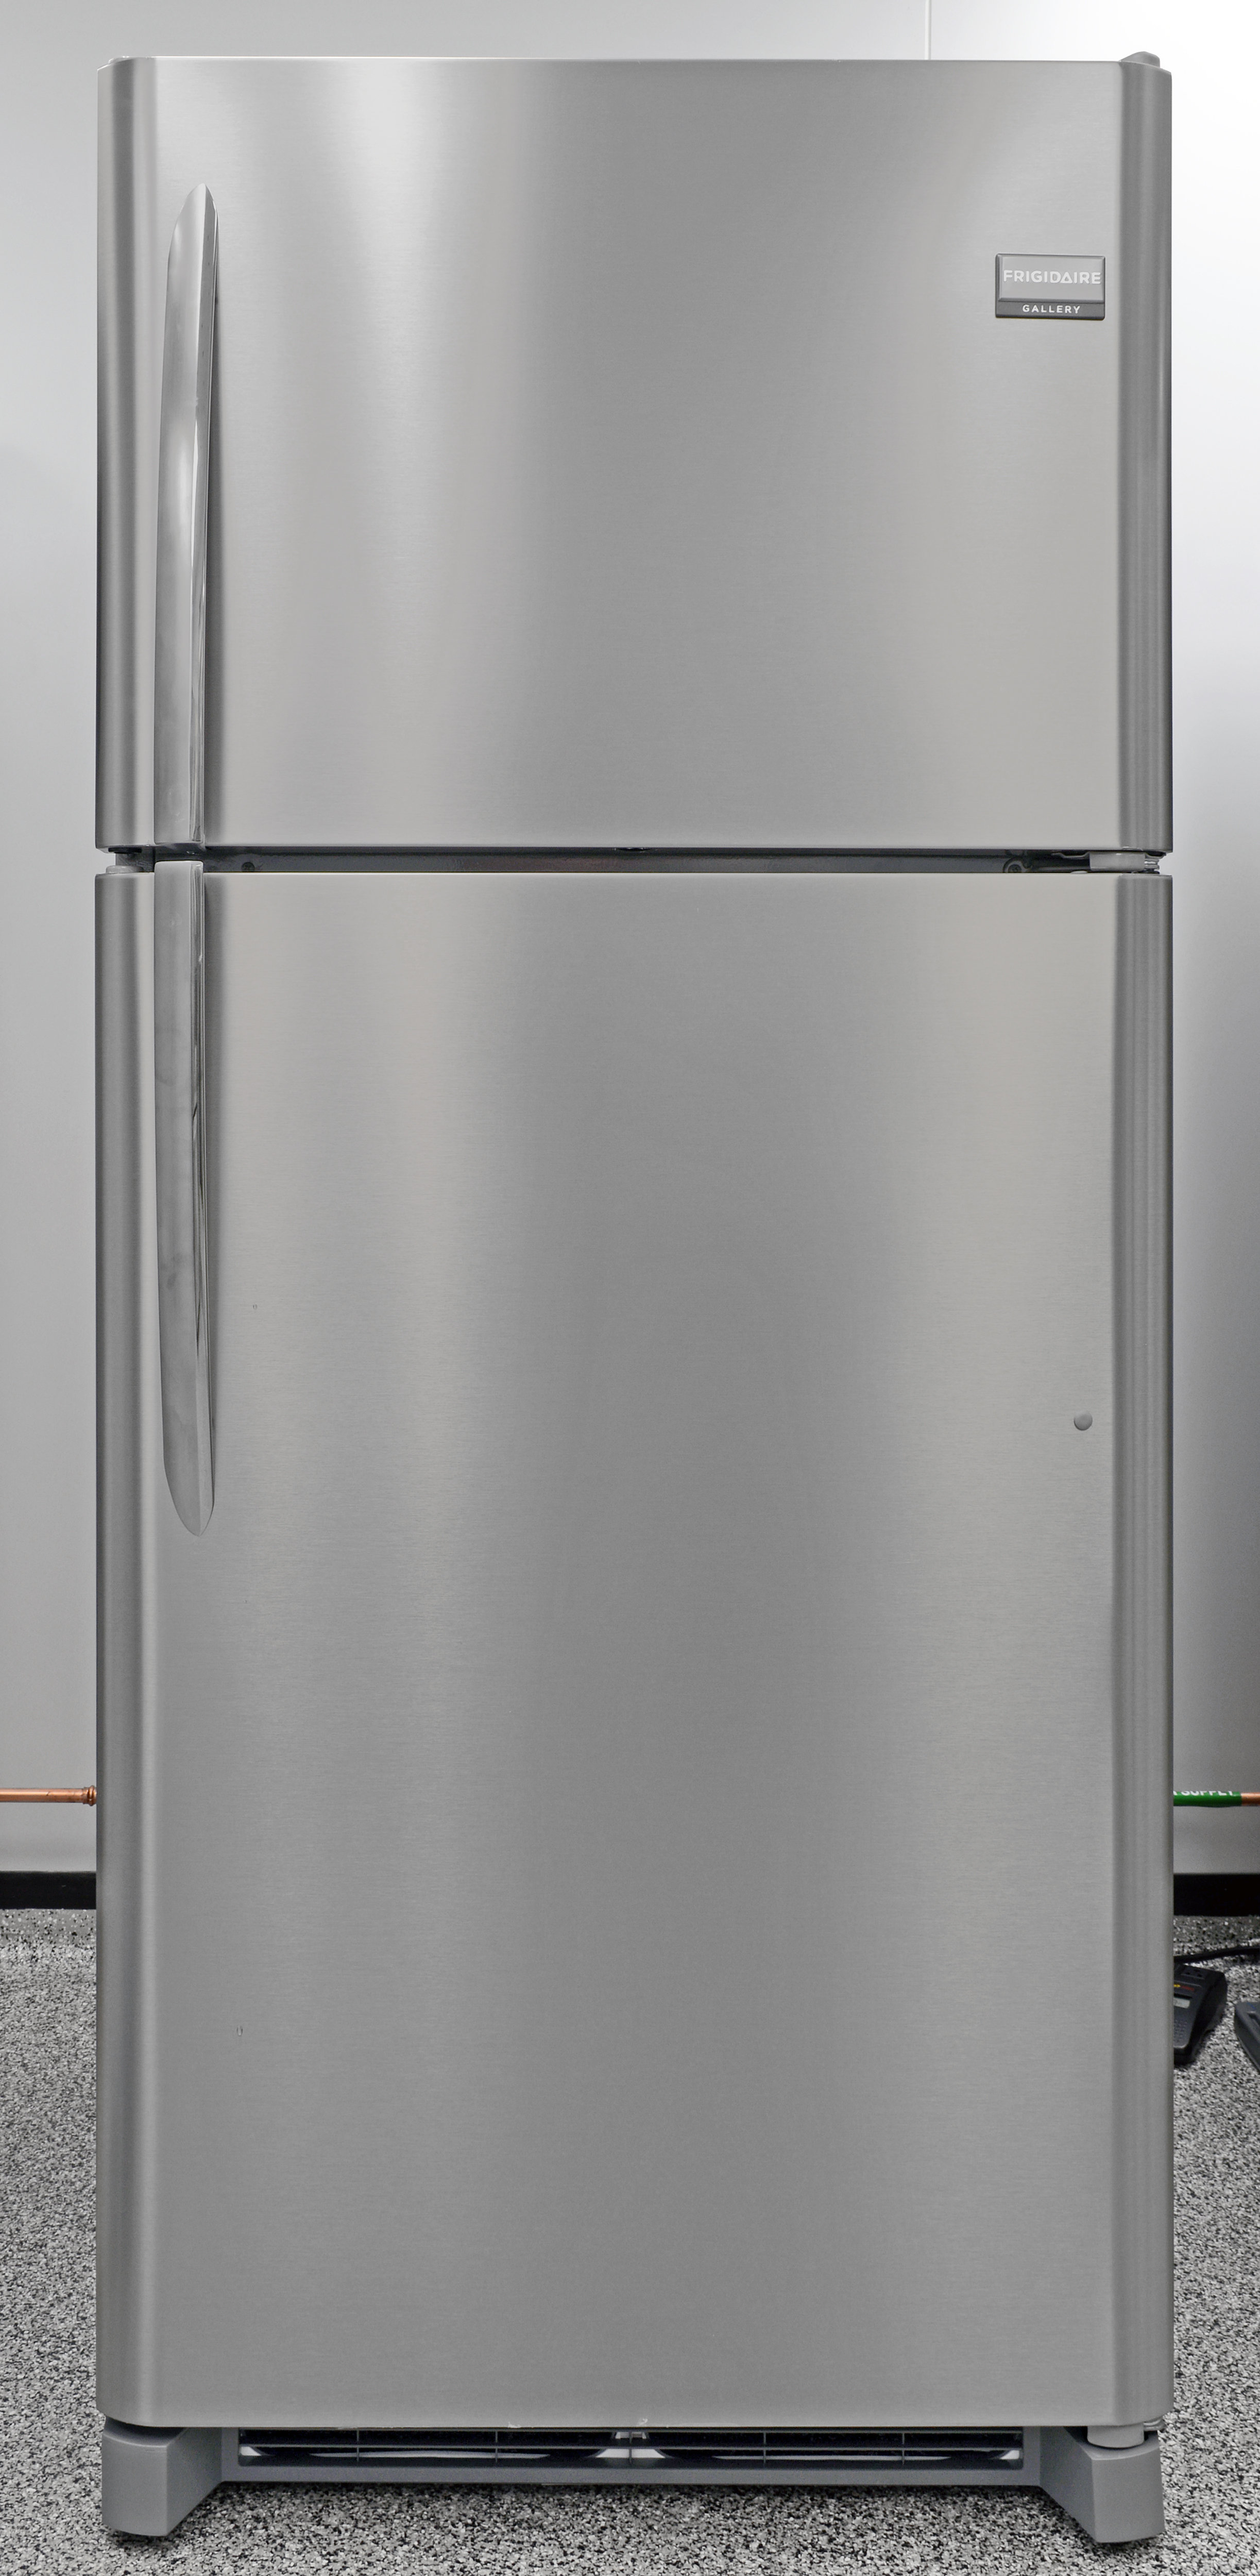 The Frigidaire Gallery FGHI2164QF 21-cubic-foot top freezer is pricey, but it's also a really good fridge.